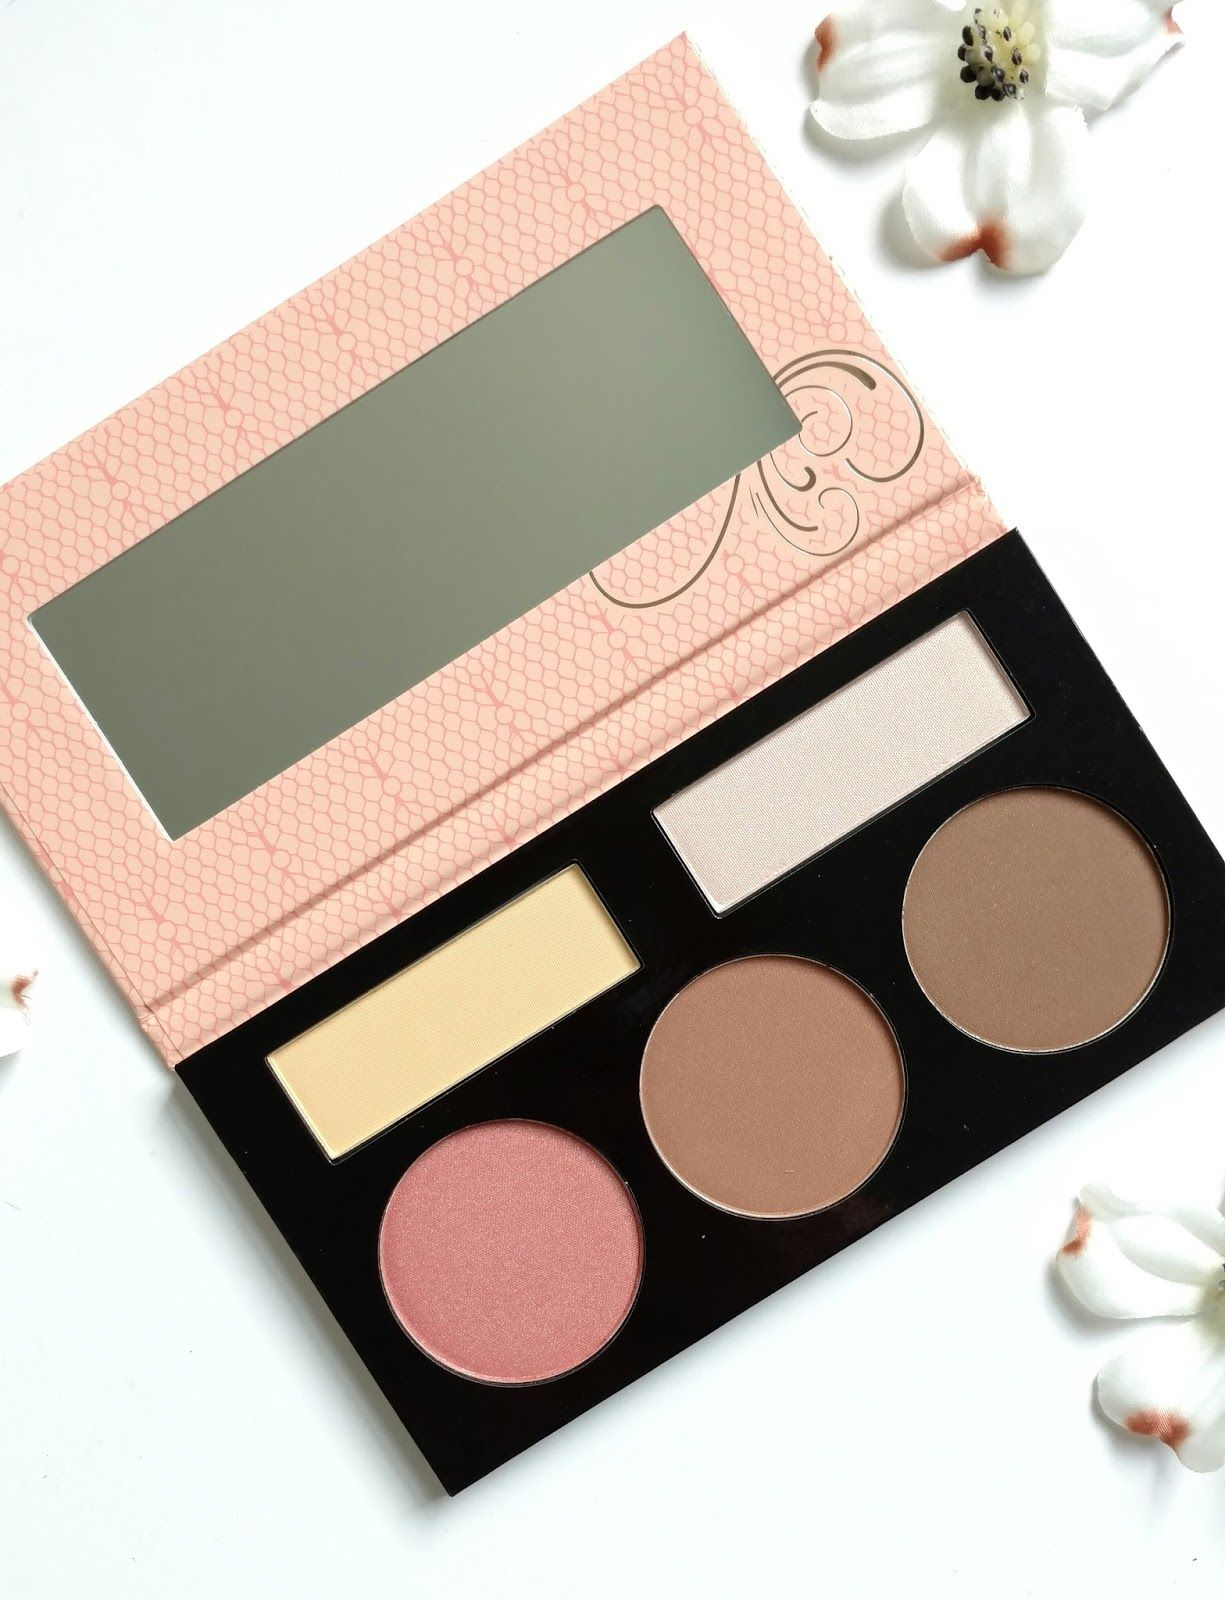 bh-cosmetics-glamorous-blush-10-color-palette-review